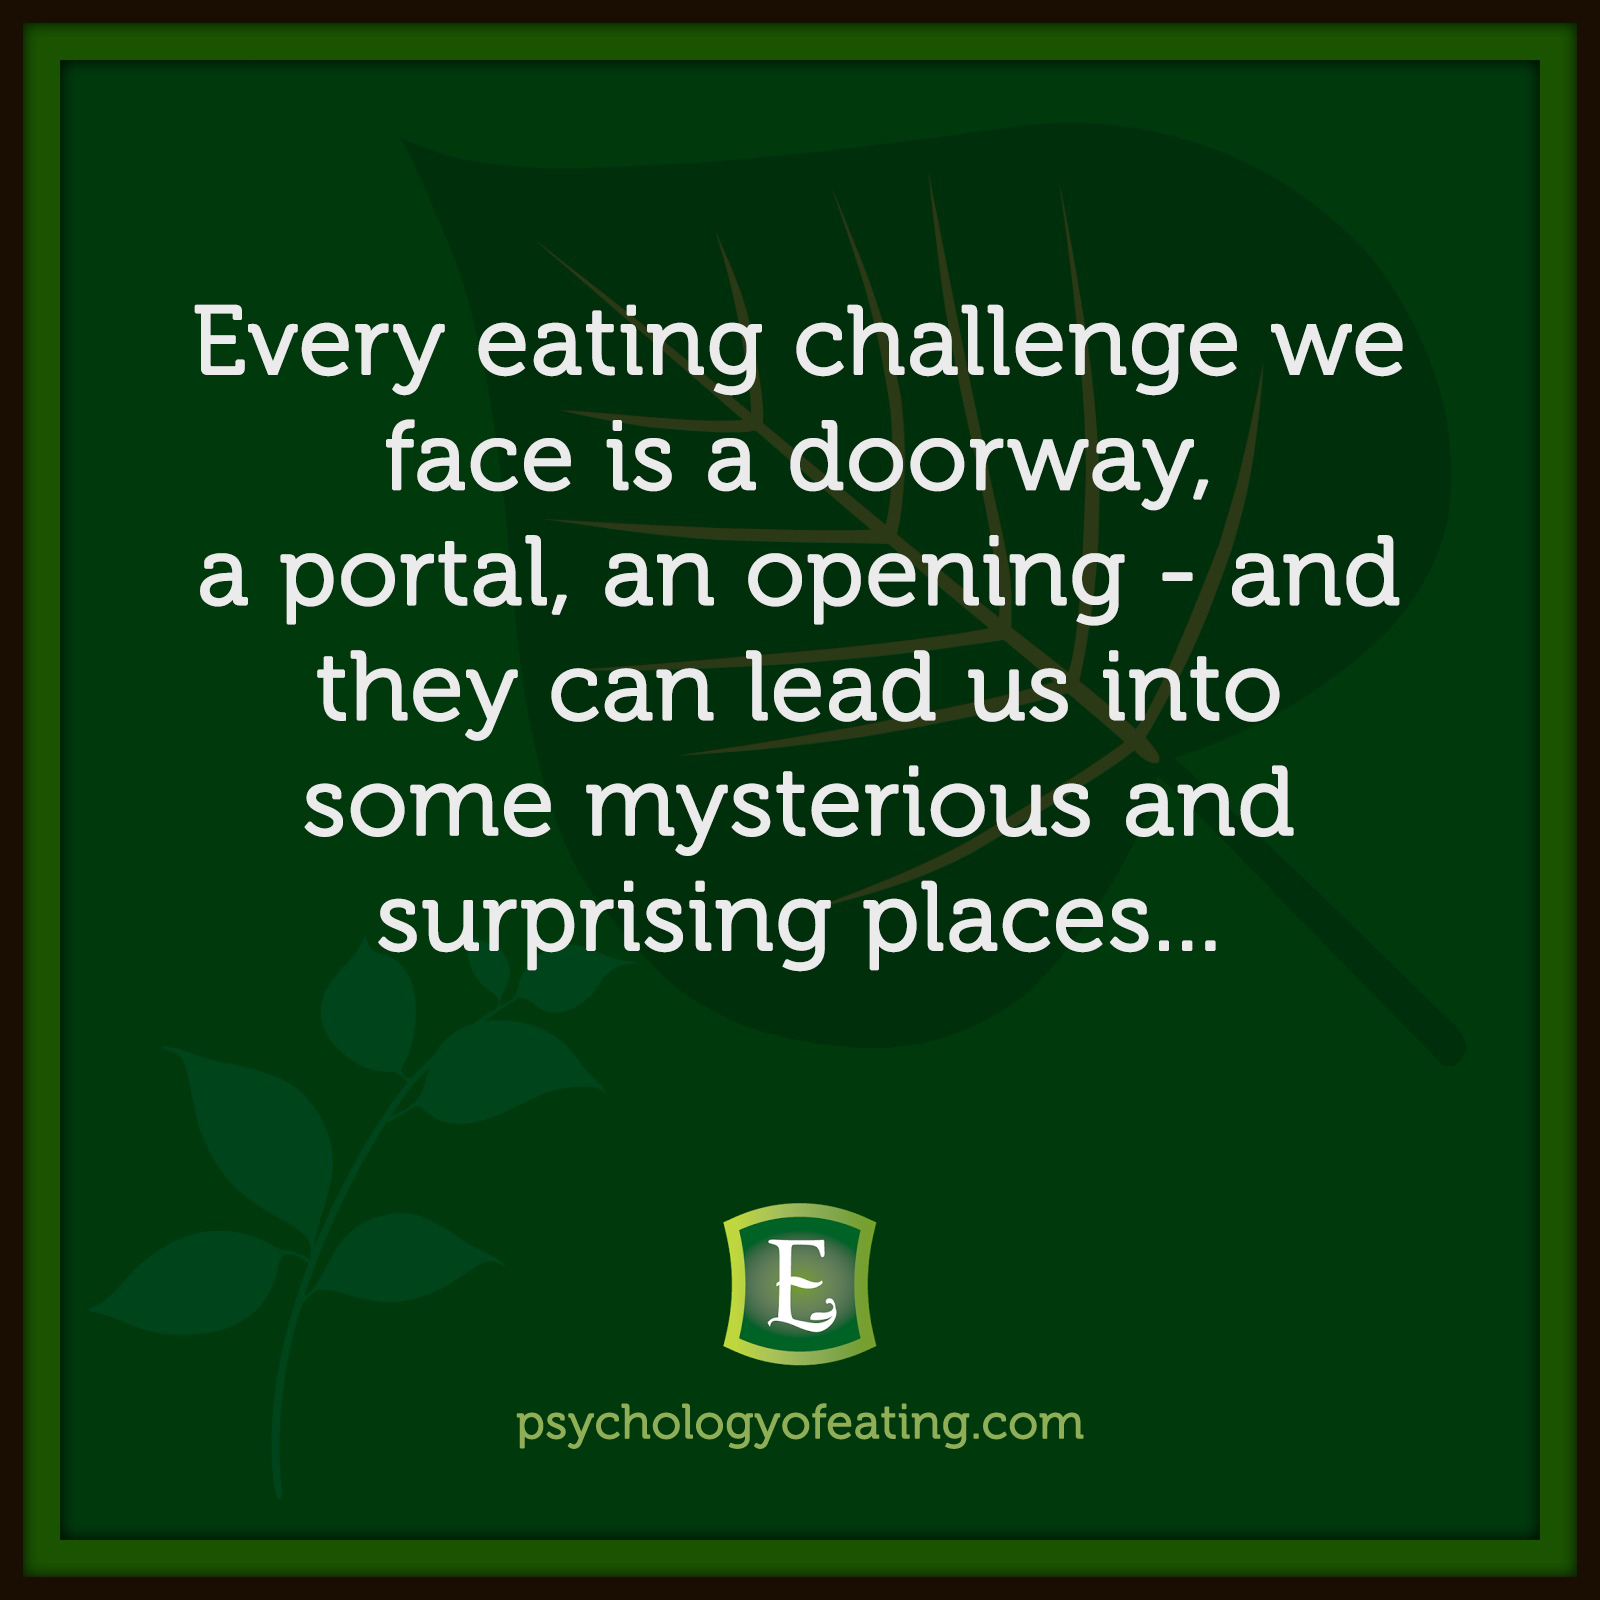 Every eating challenge we face is a doorway, a portal, an opening – and they can lead us into some mysterious and surprising places… #health #nutrition #eatingpsychology #IPE